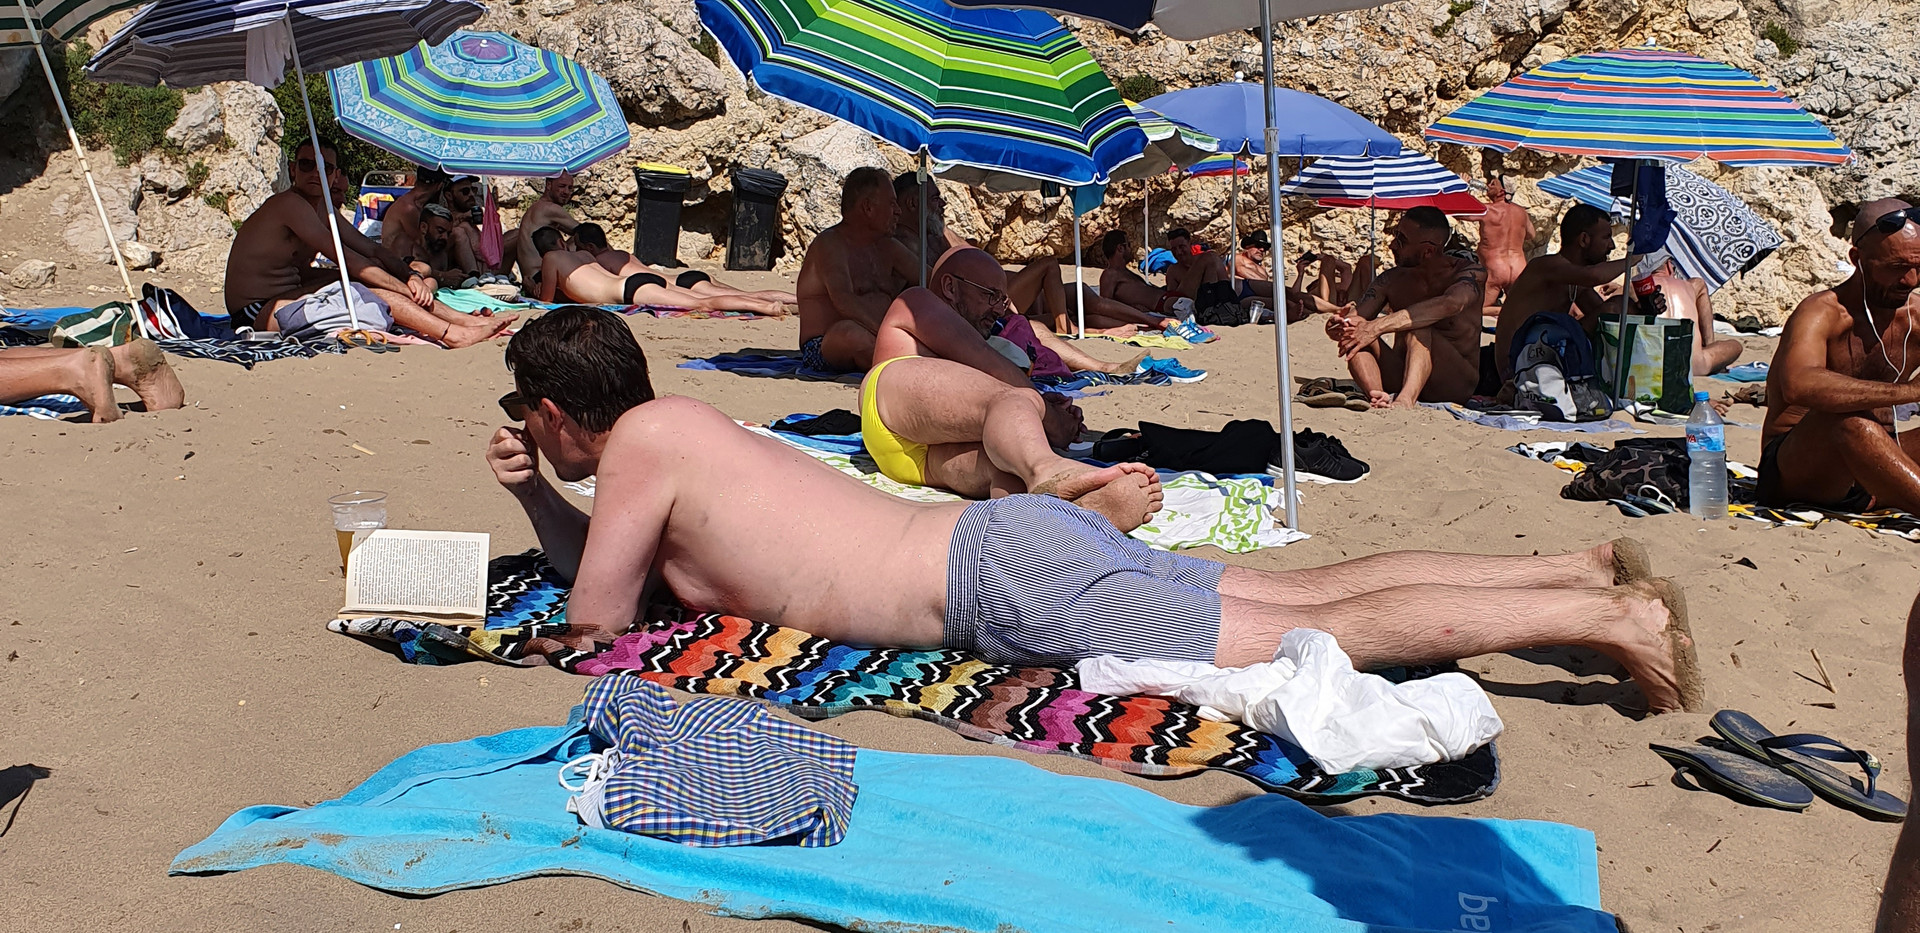 Tanning on the Gay Beach